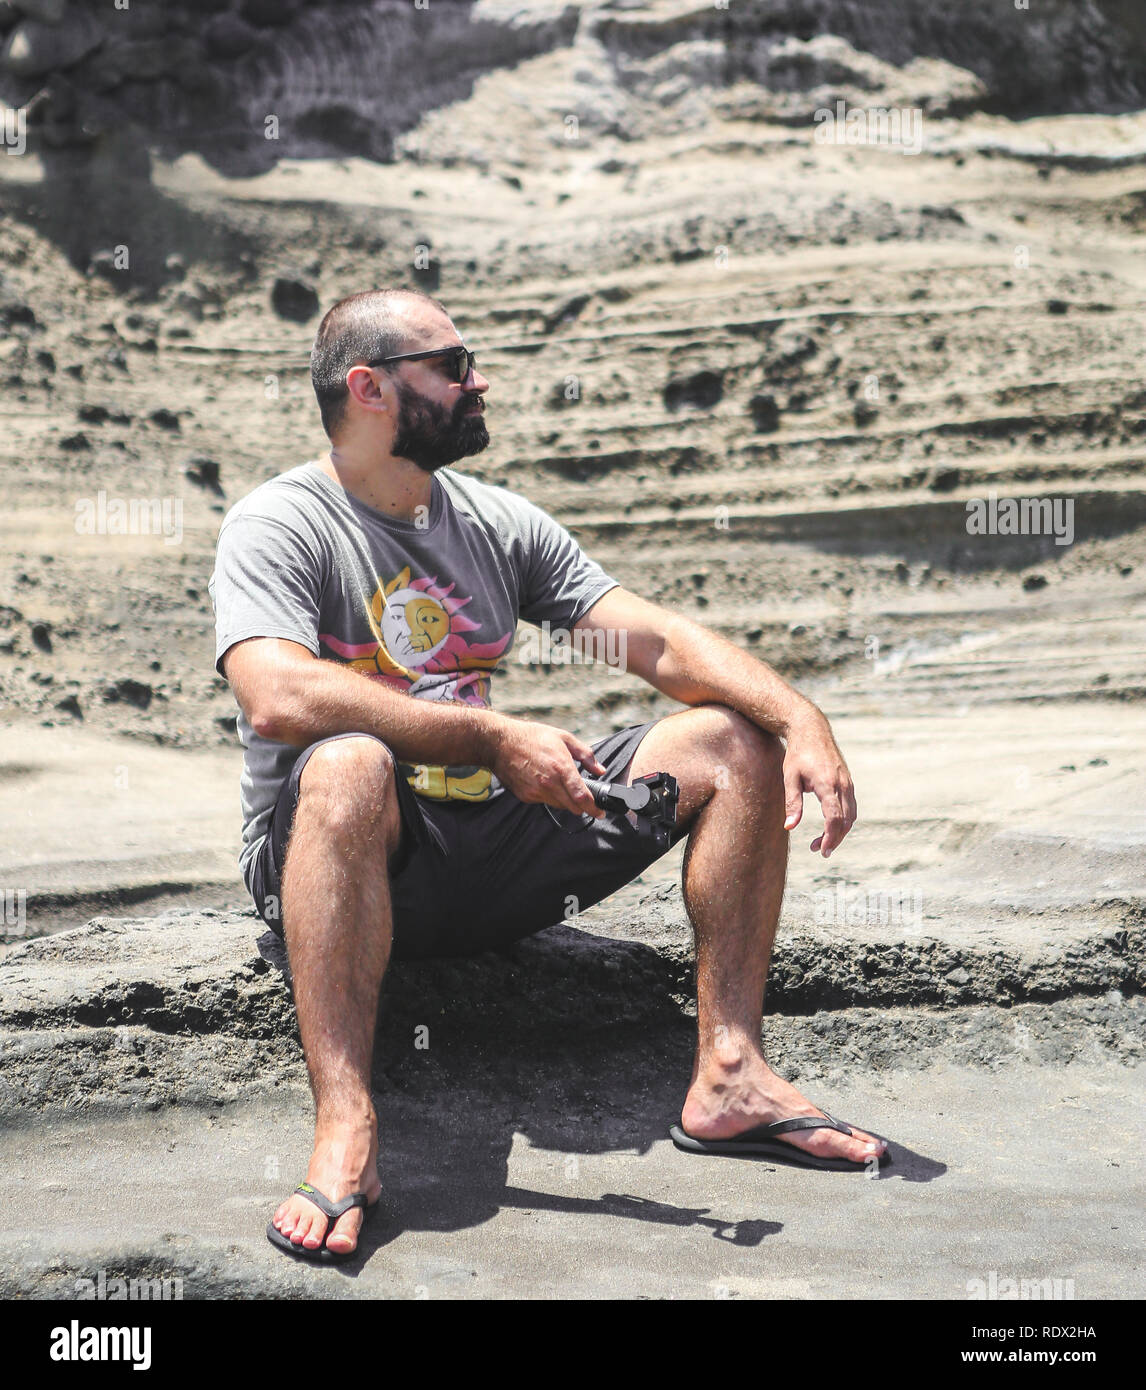 Young man with beard siting on the sandy desert bank Bali Indonesia - Stock Image